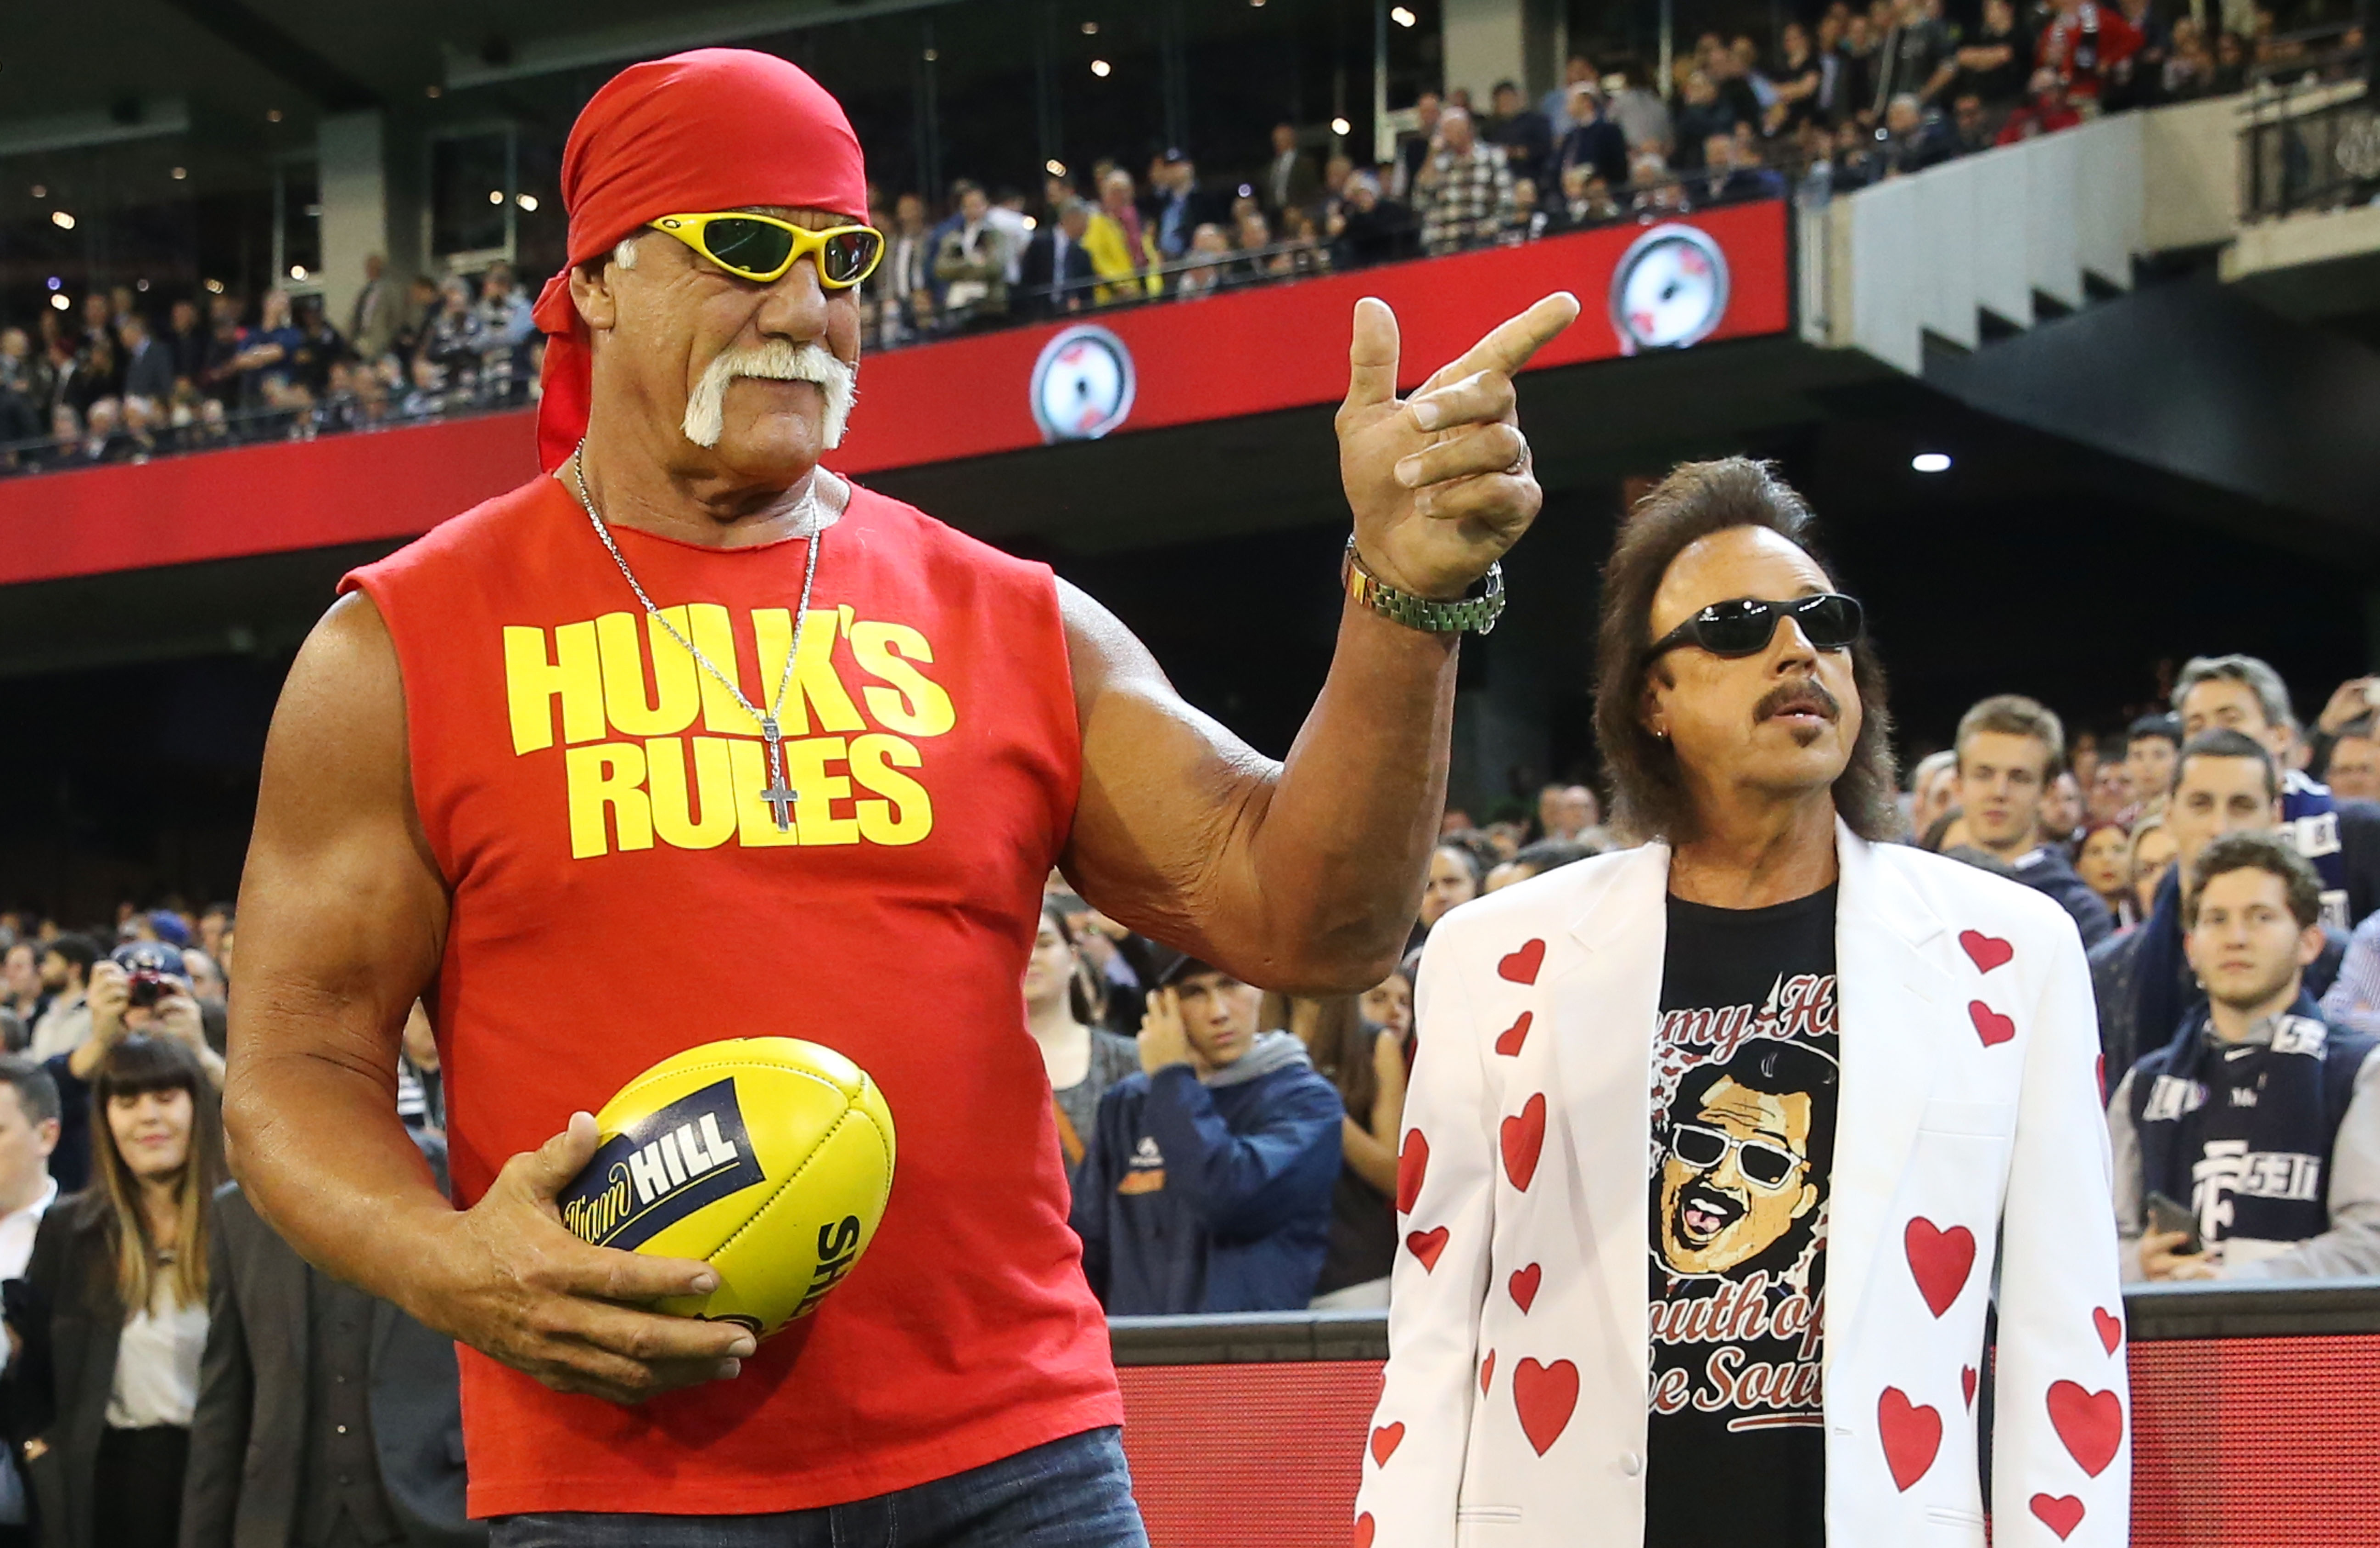 Hulk Hogan & Jimmy Hart